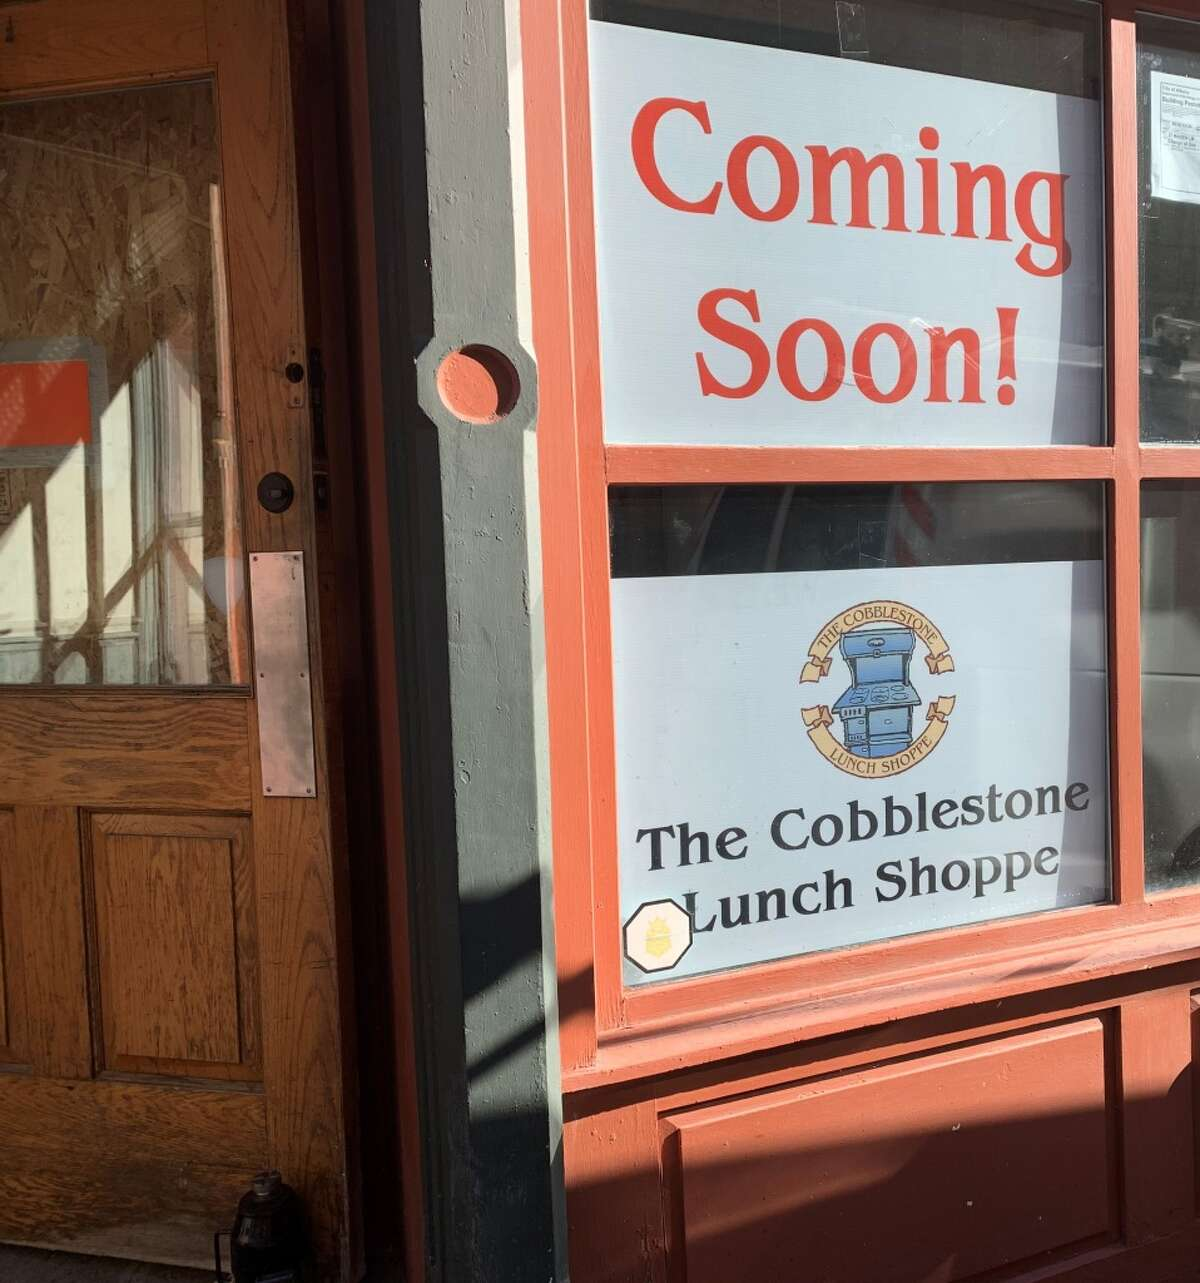 The Cobblestone Lunch Shoppe is in its final weeks of development for an opening in late October or early November 2019 at 37 Maiden Lane in downtown Albany.